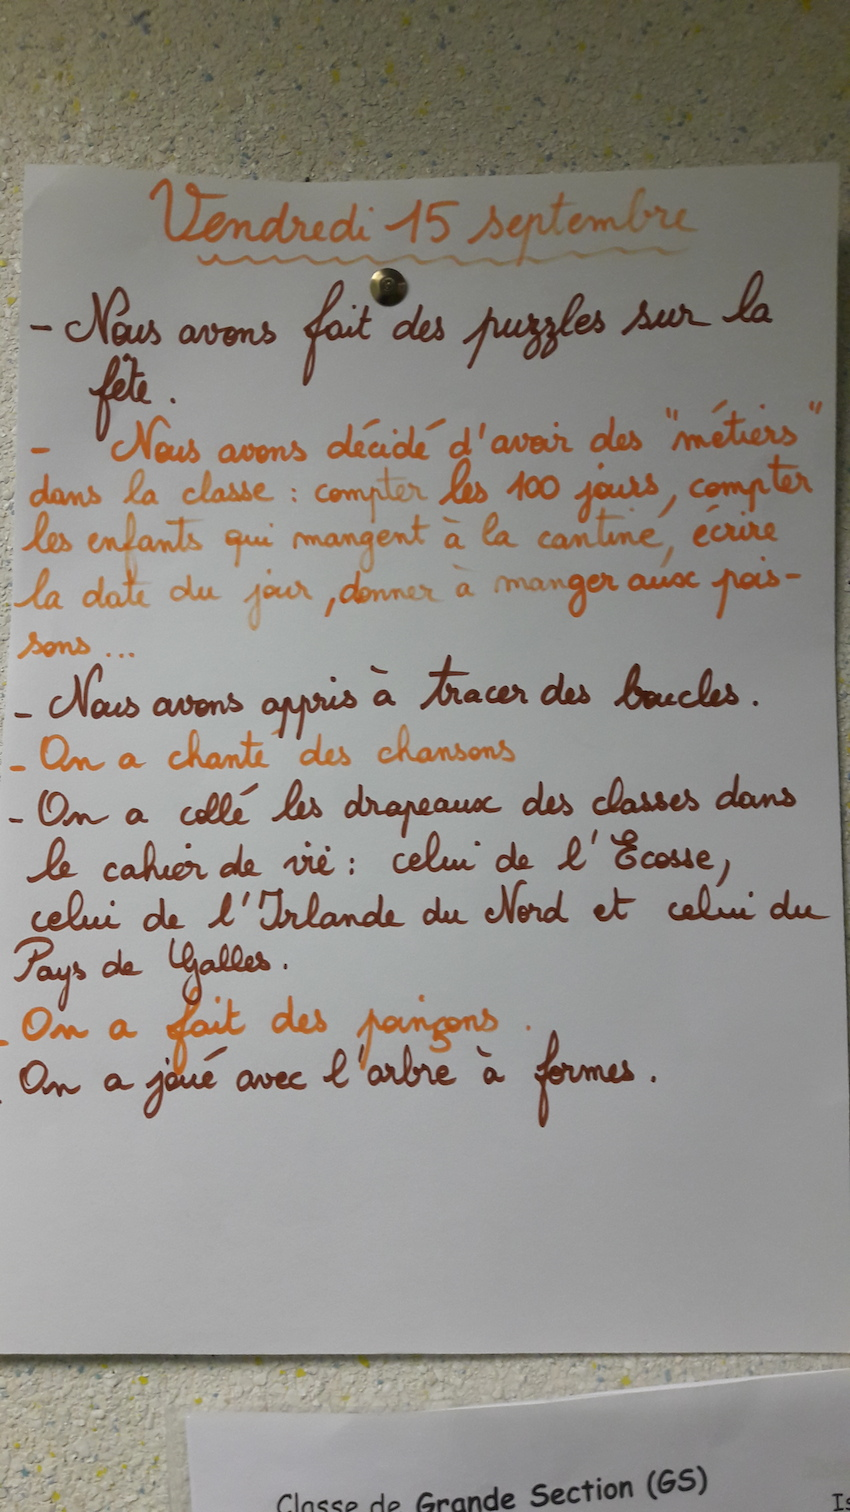 Journal des parents de la classe d'Isabelle